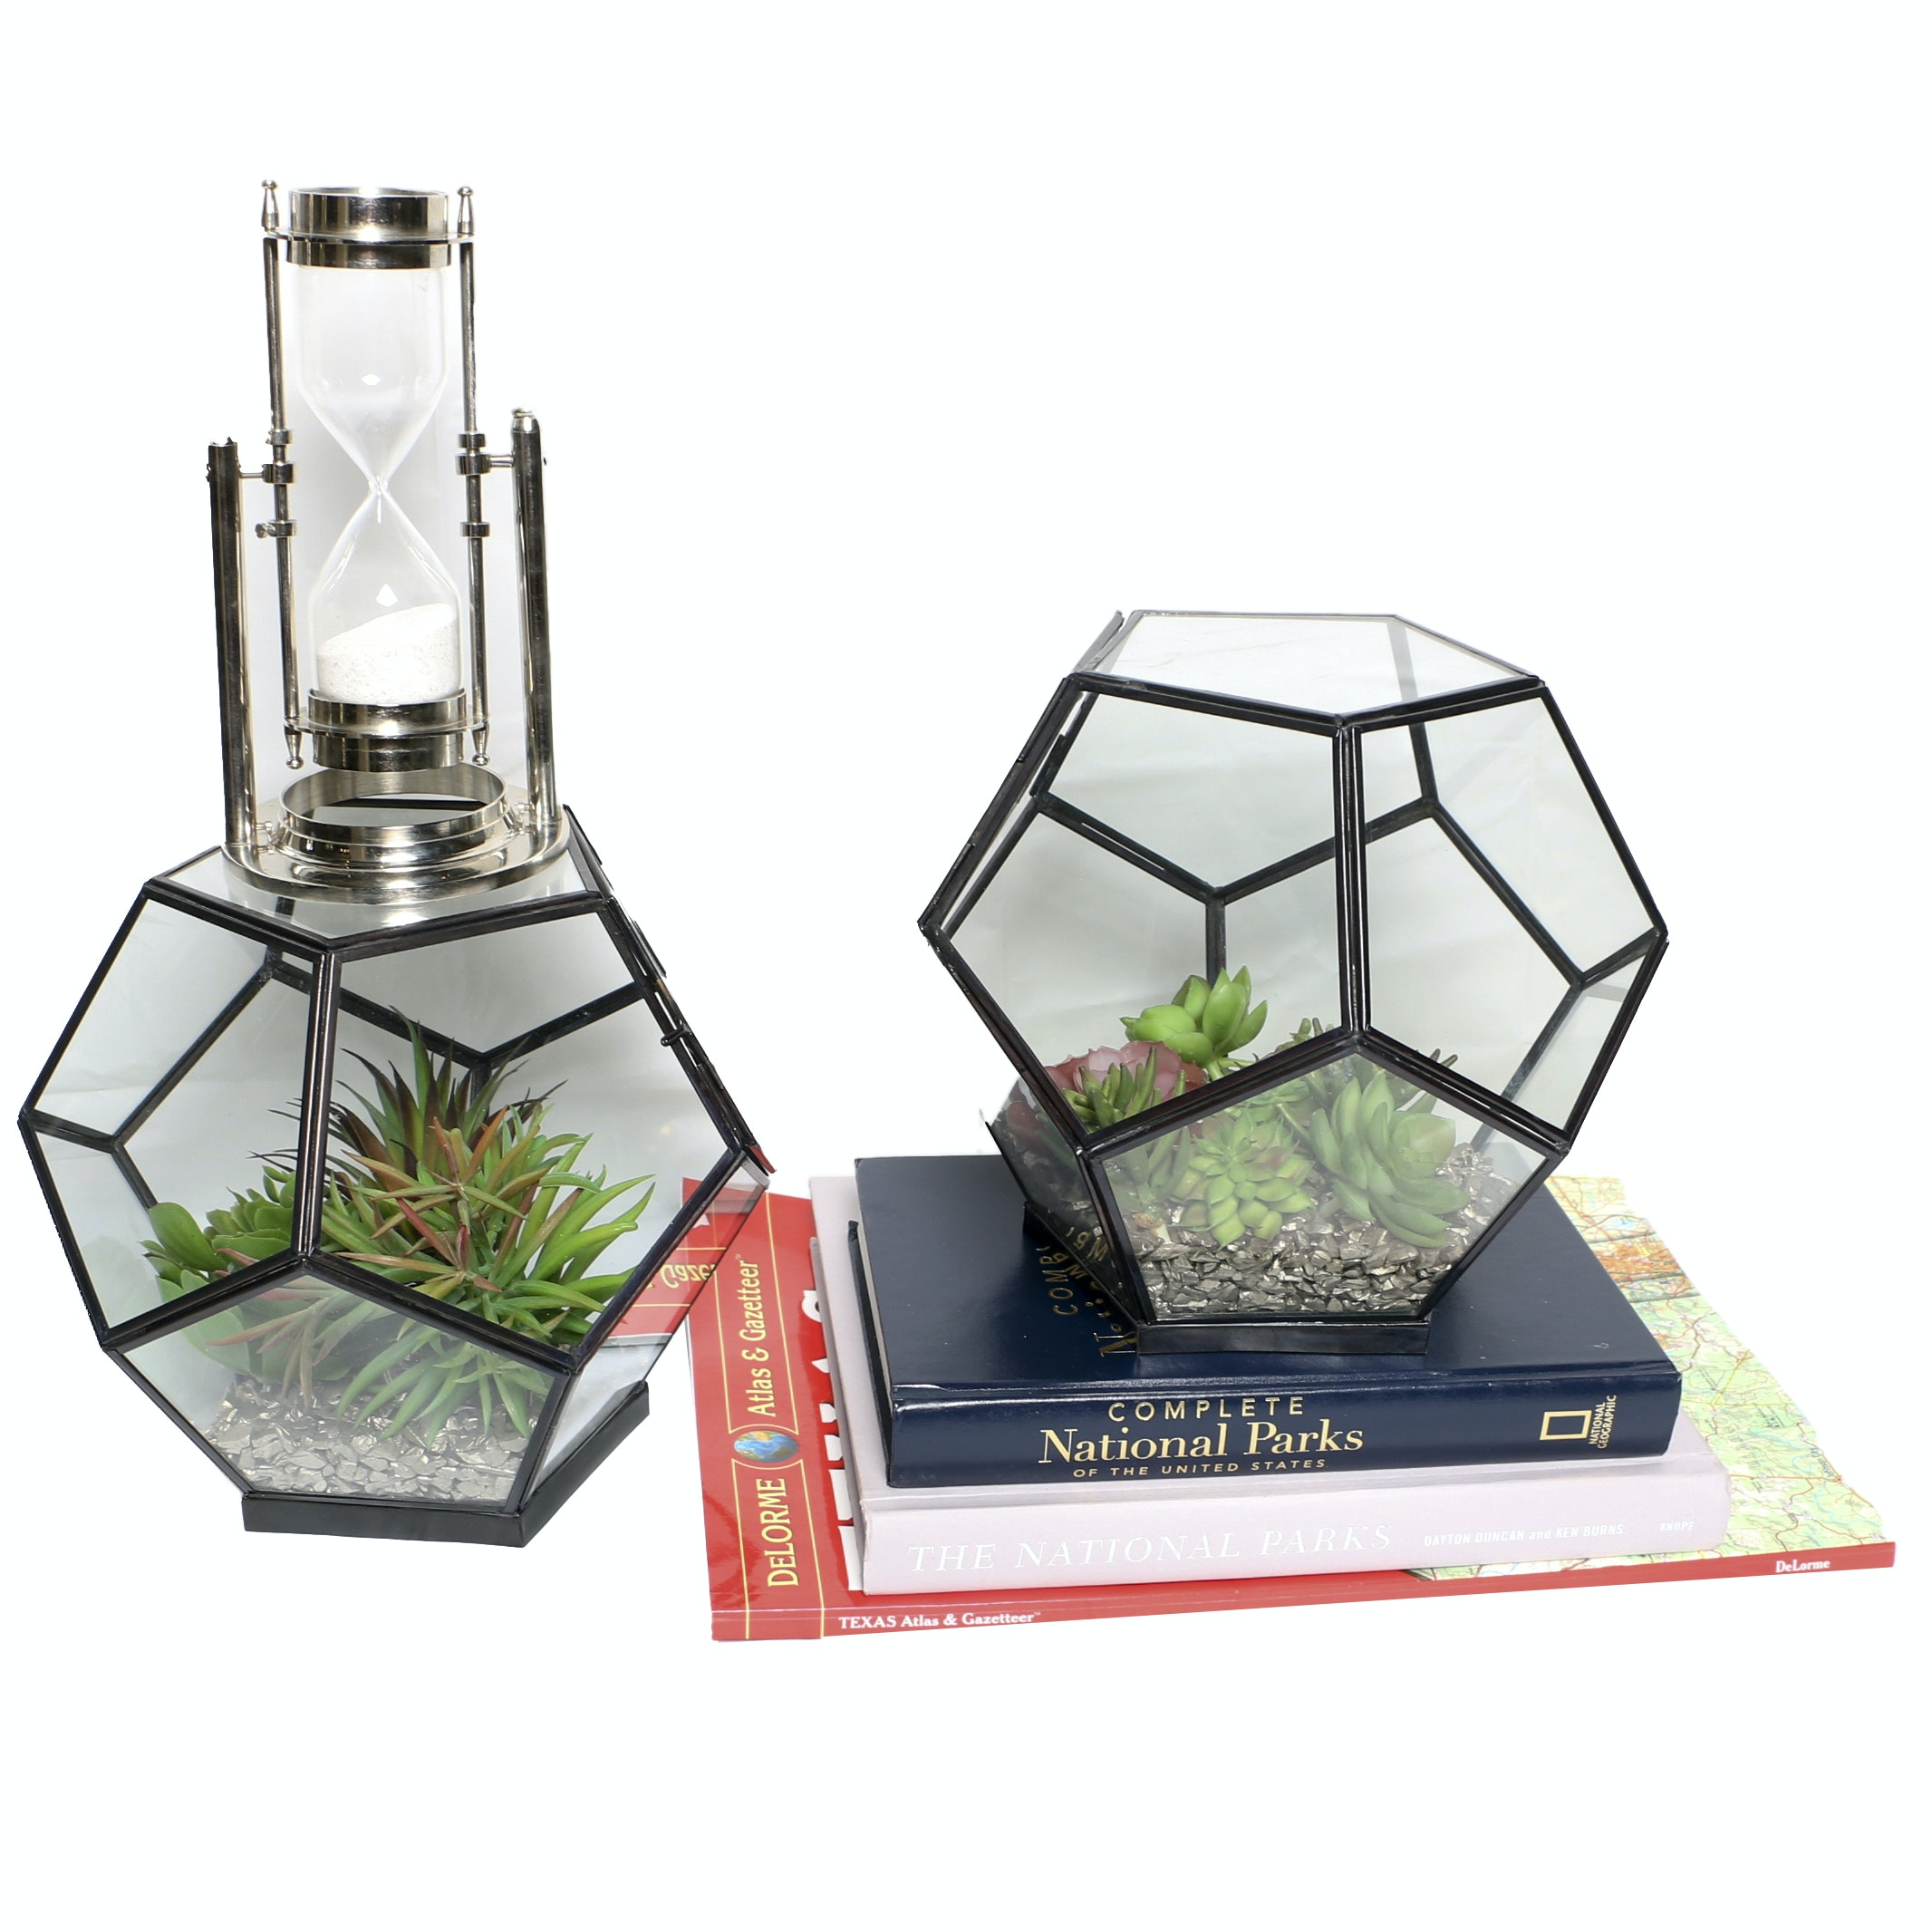 Honeycomb Terrariums with Faux Succulents, an Hour Glass, and Books